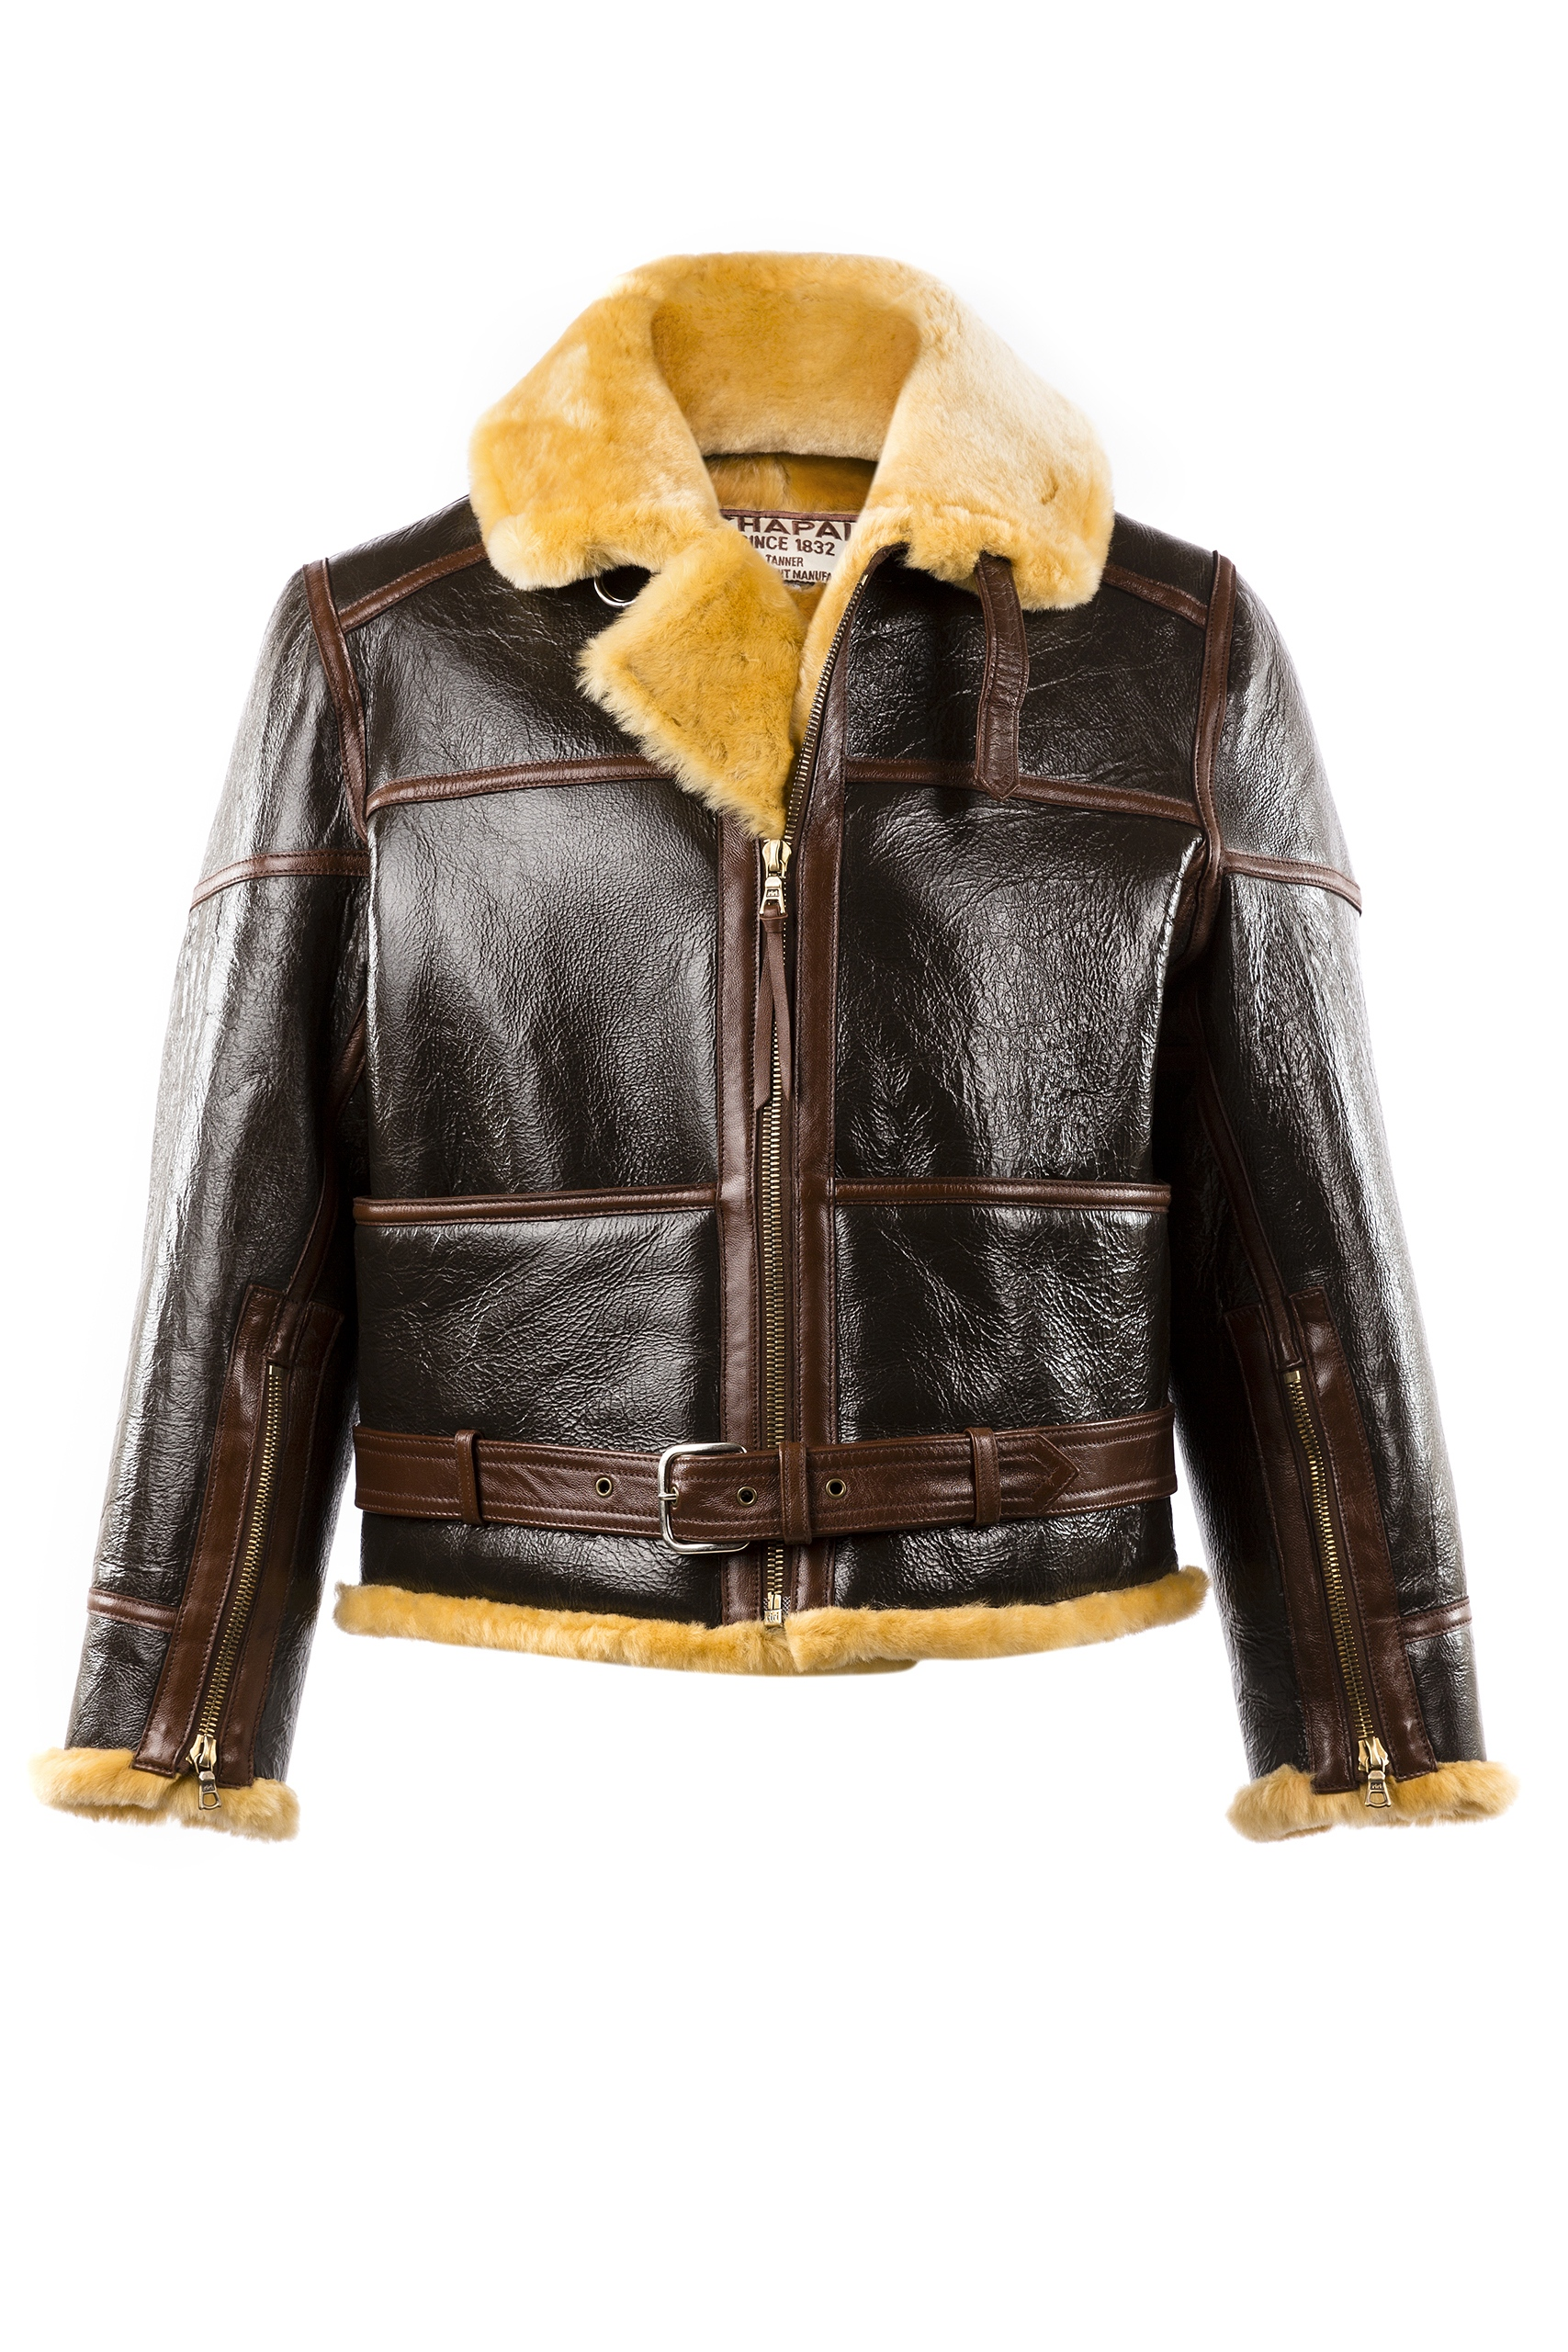 RAF Jacket - Varnished shearling - Gold color